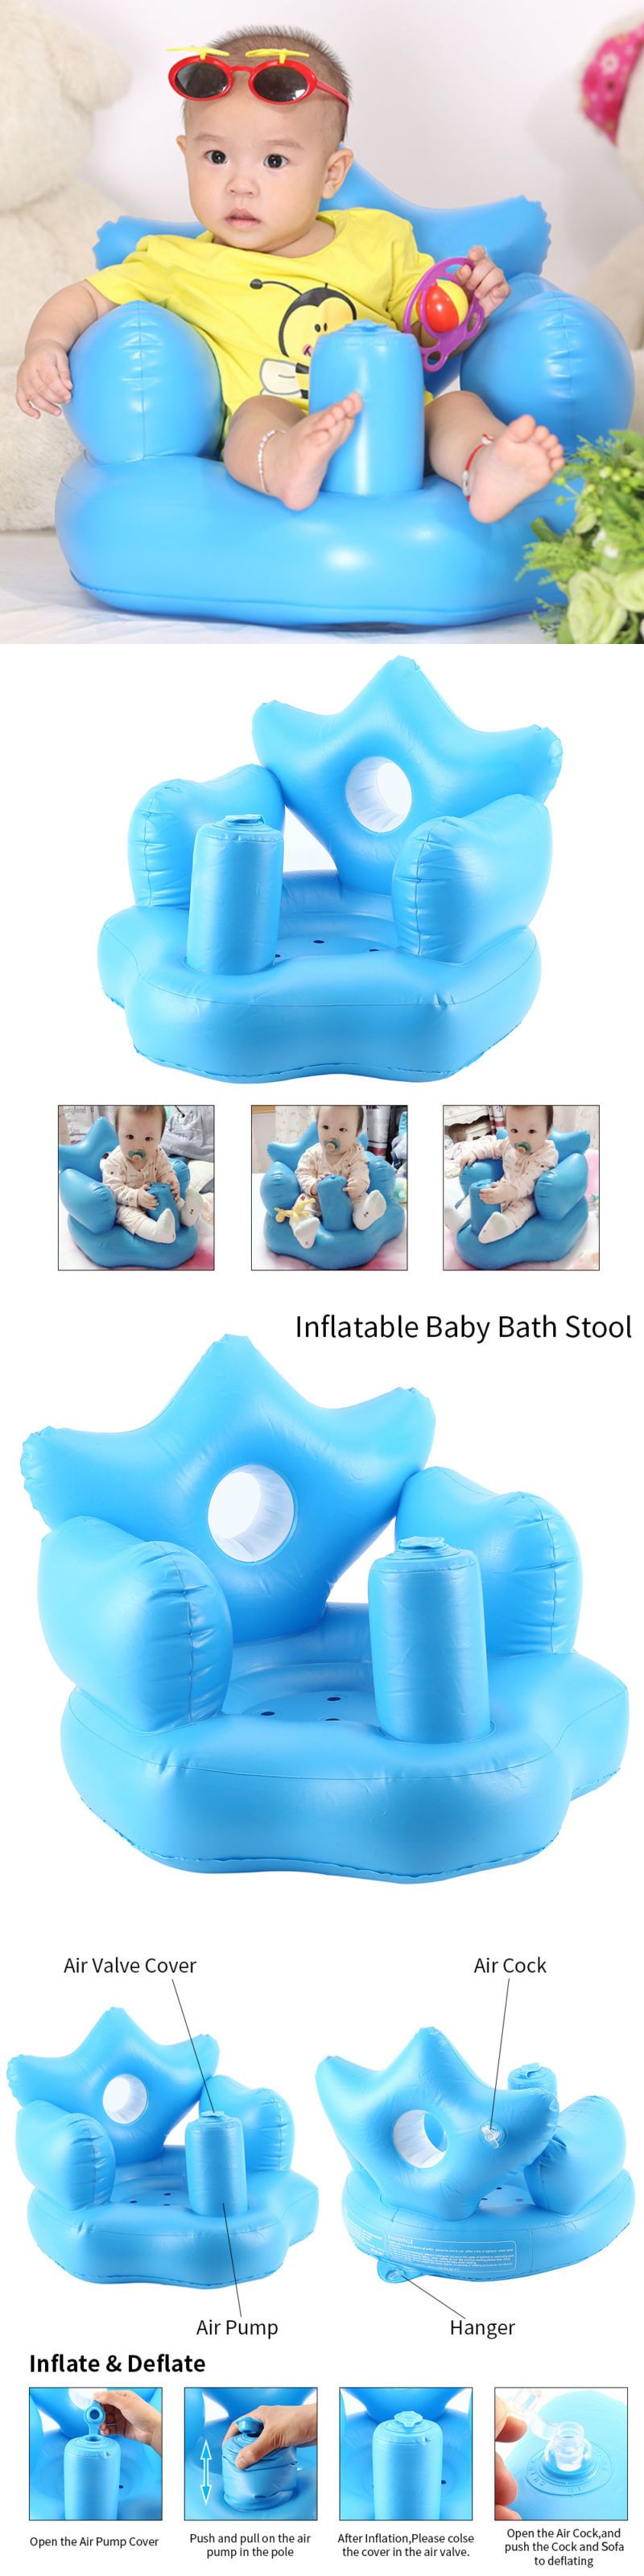 Bath Tub Seats and Rings 162024: Baby Inflatable Sofa Toddlers Sit ...